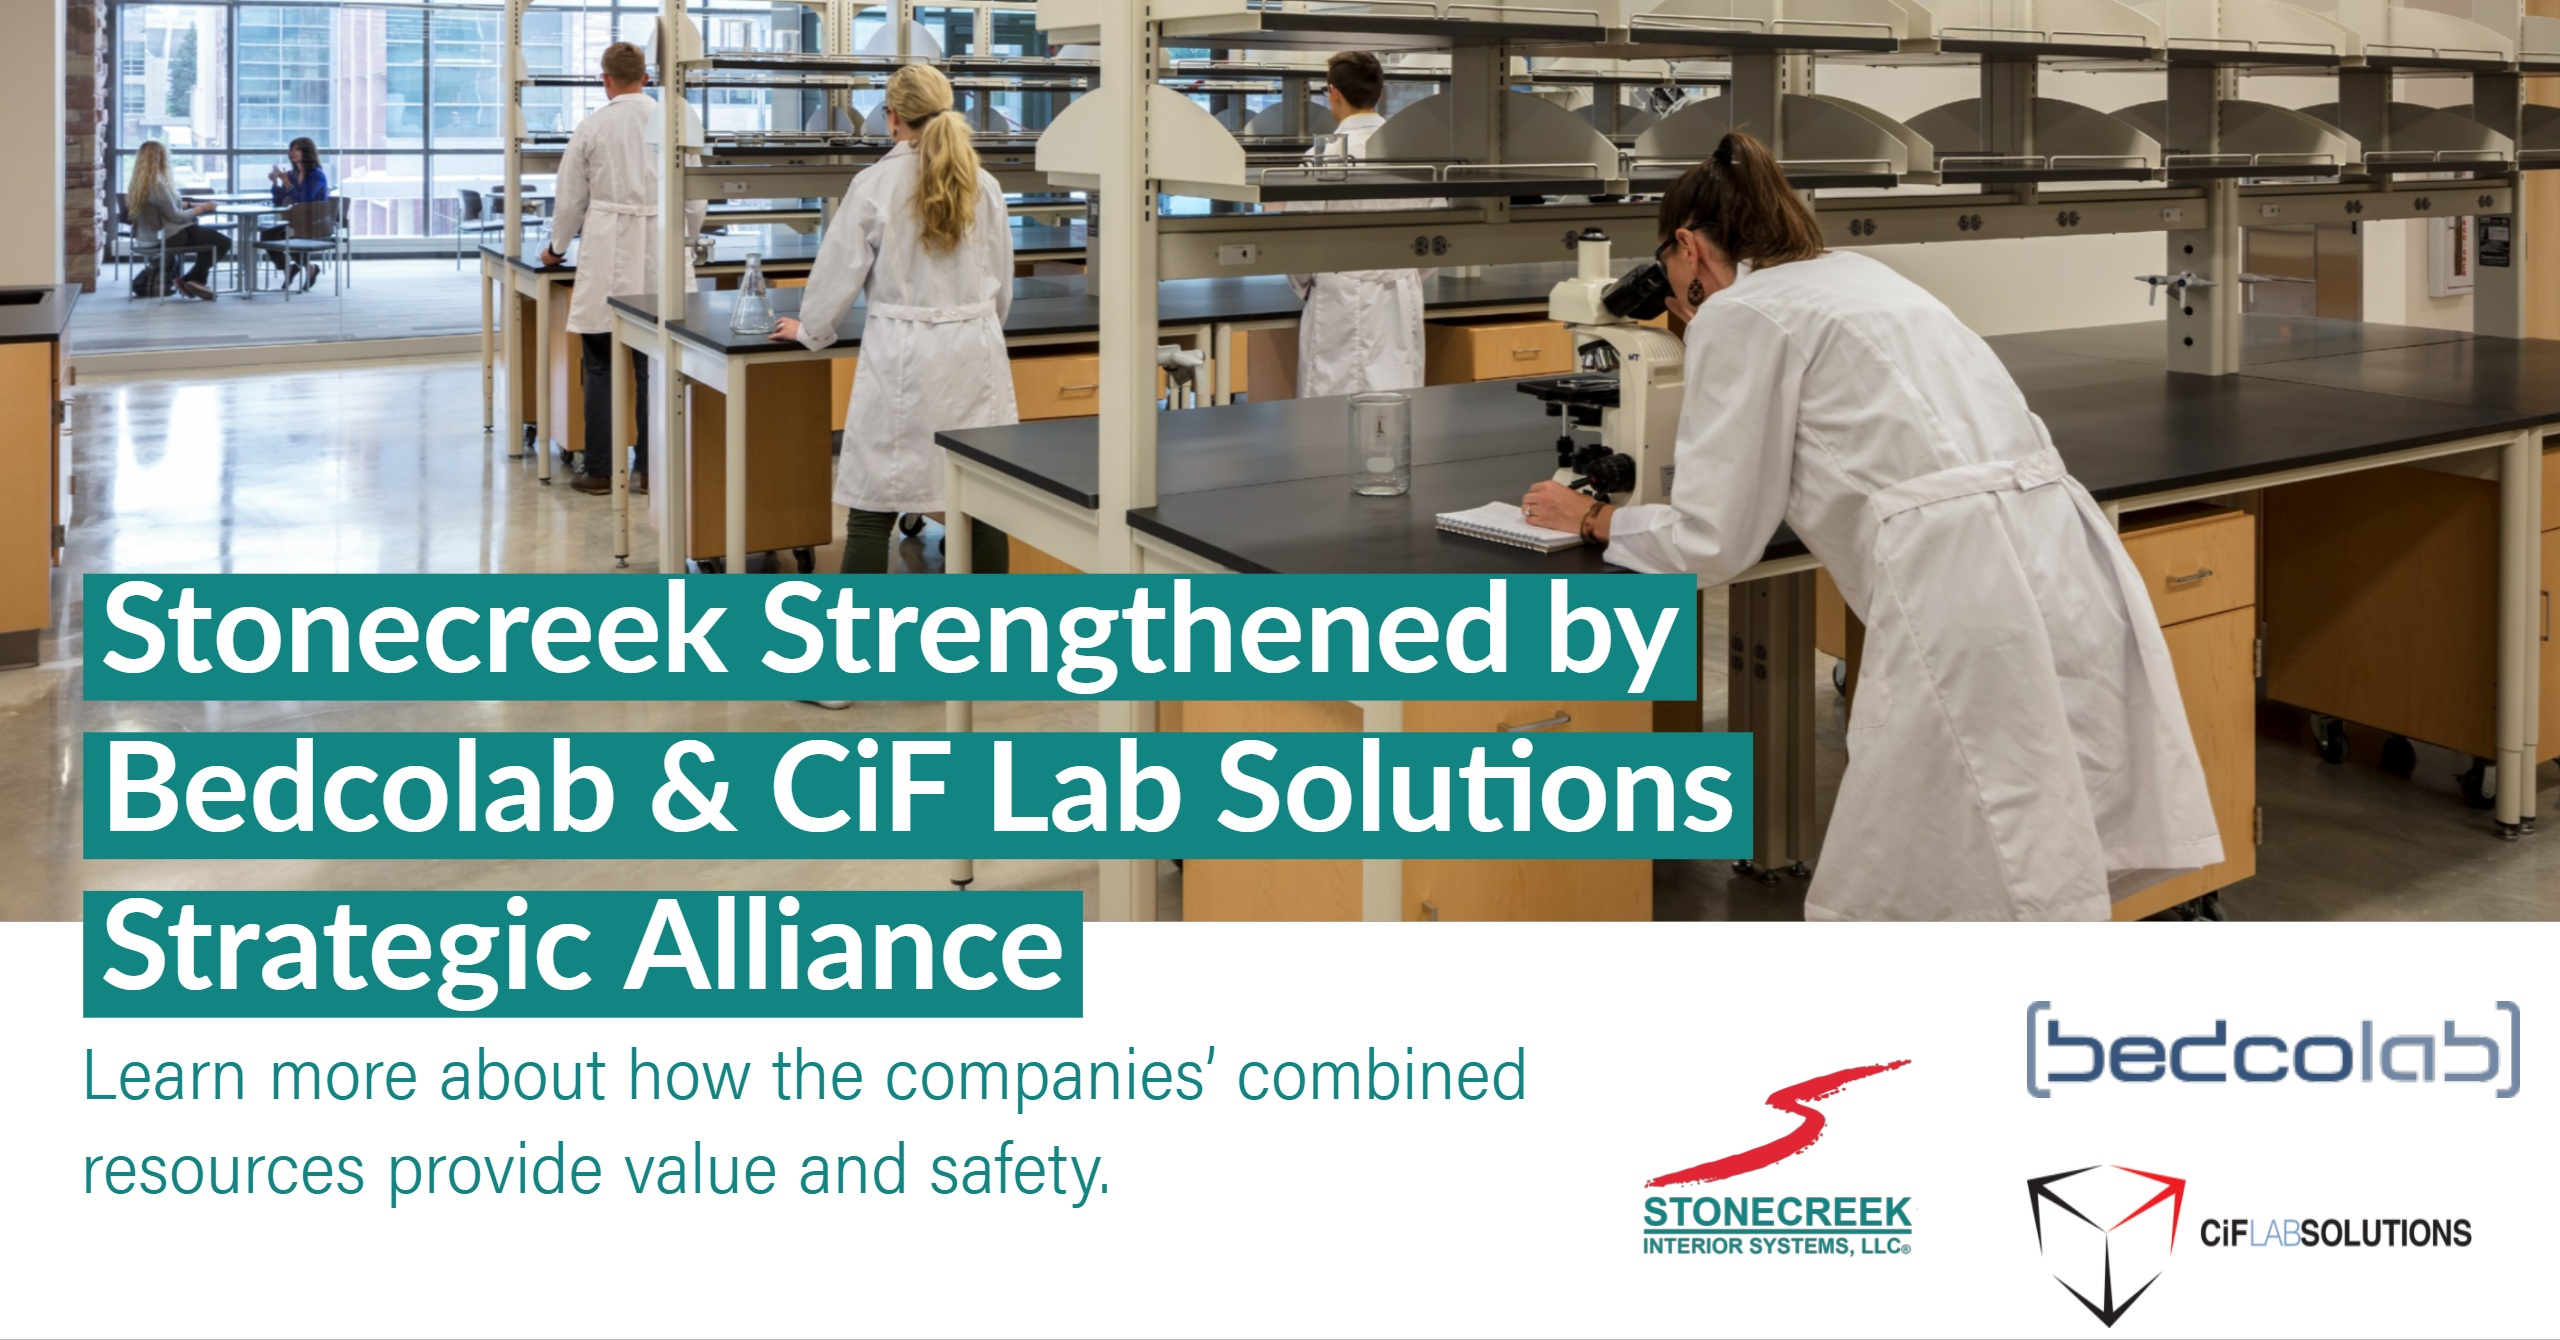 Stonecreek Strengthened by Bedcolab and CiF Lab Solutions Strategic Alliance